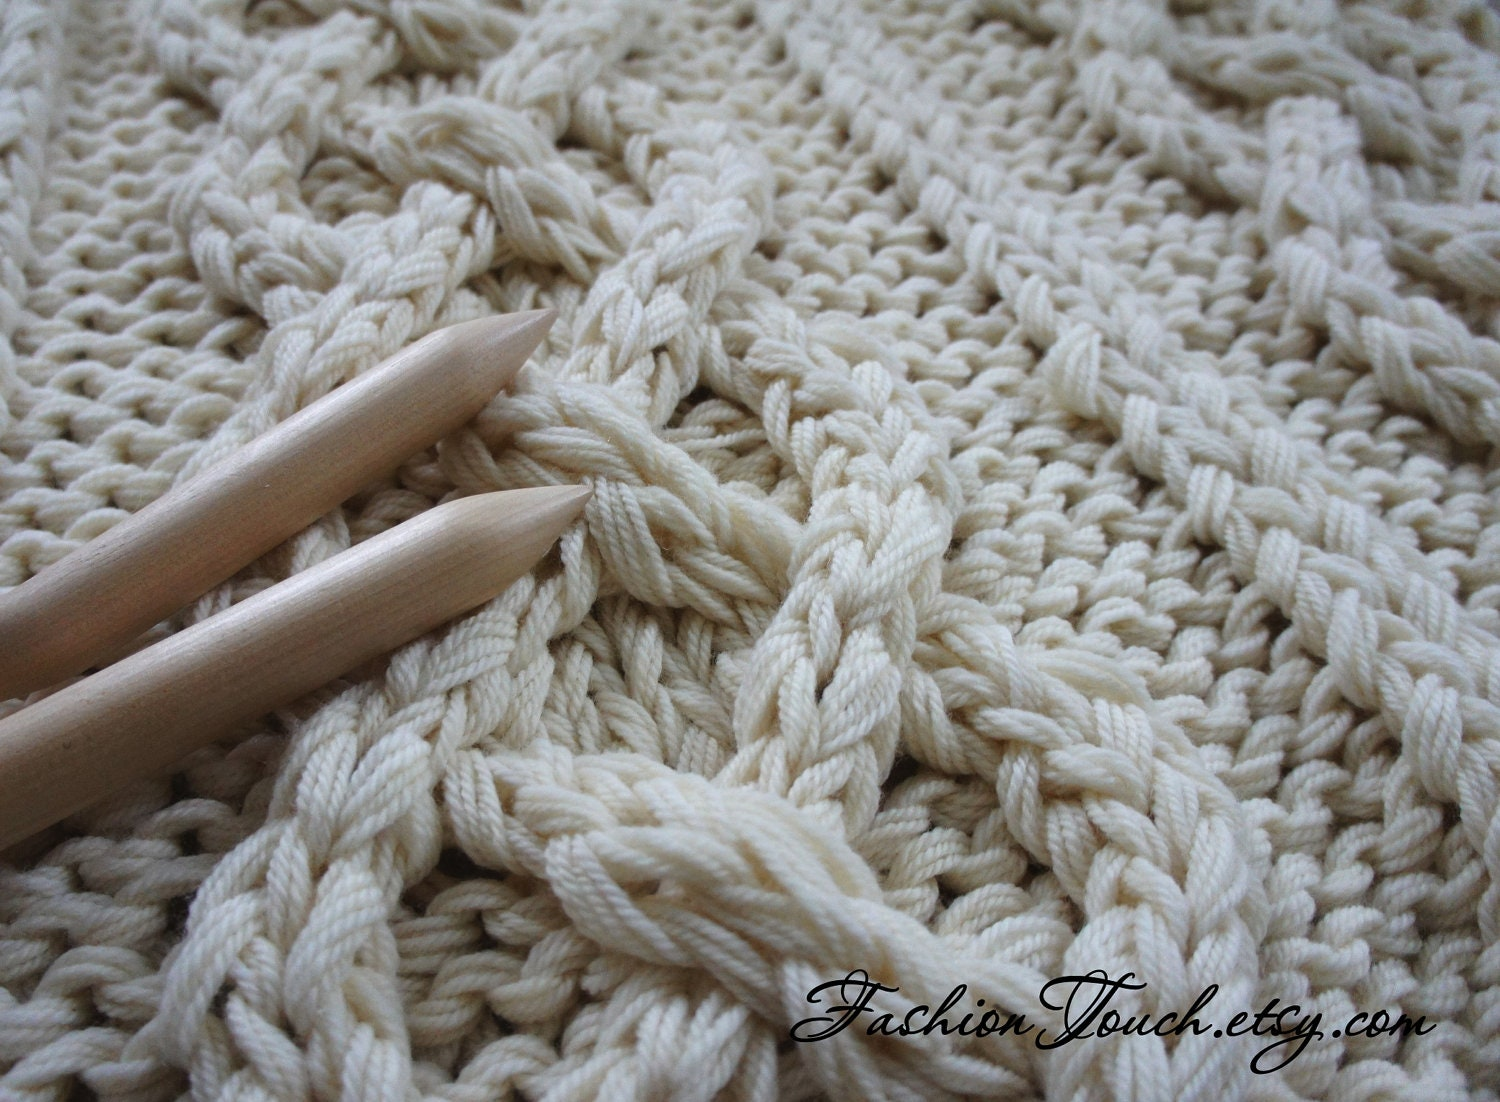 Knit Blanket Cable Knit Blanket Knit Throw Knit Blanket